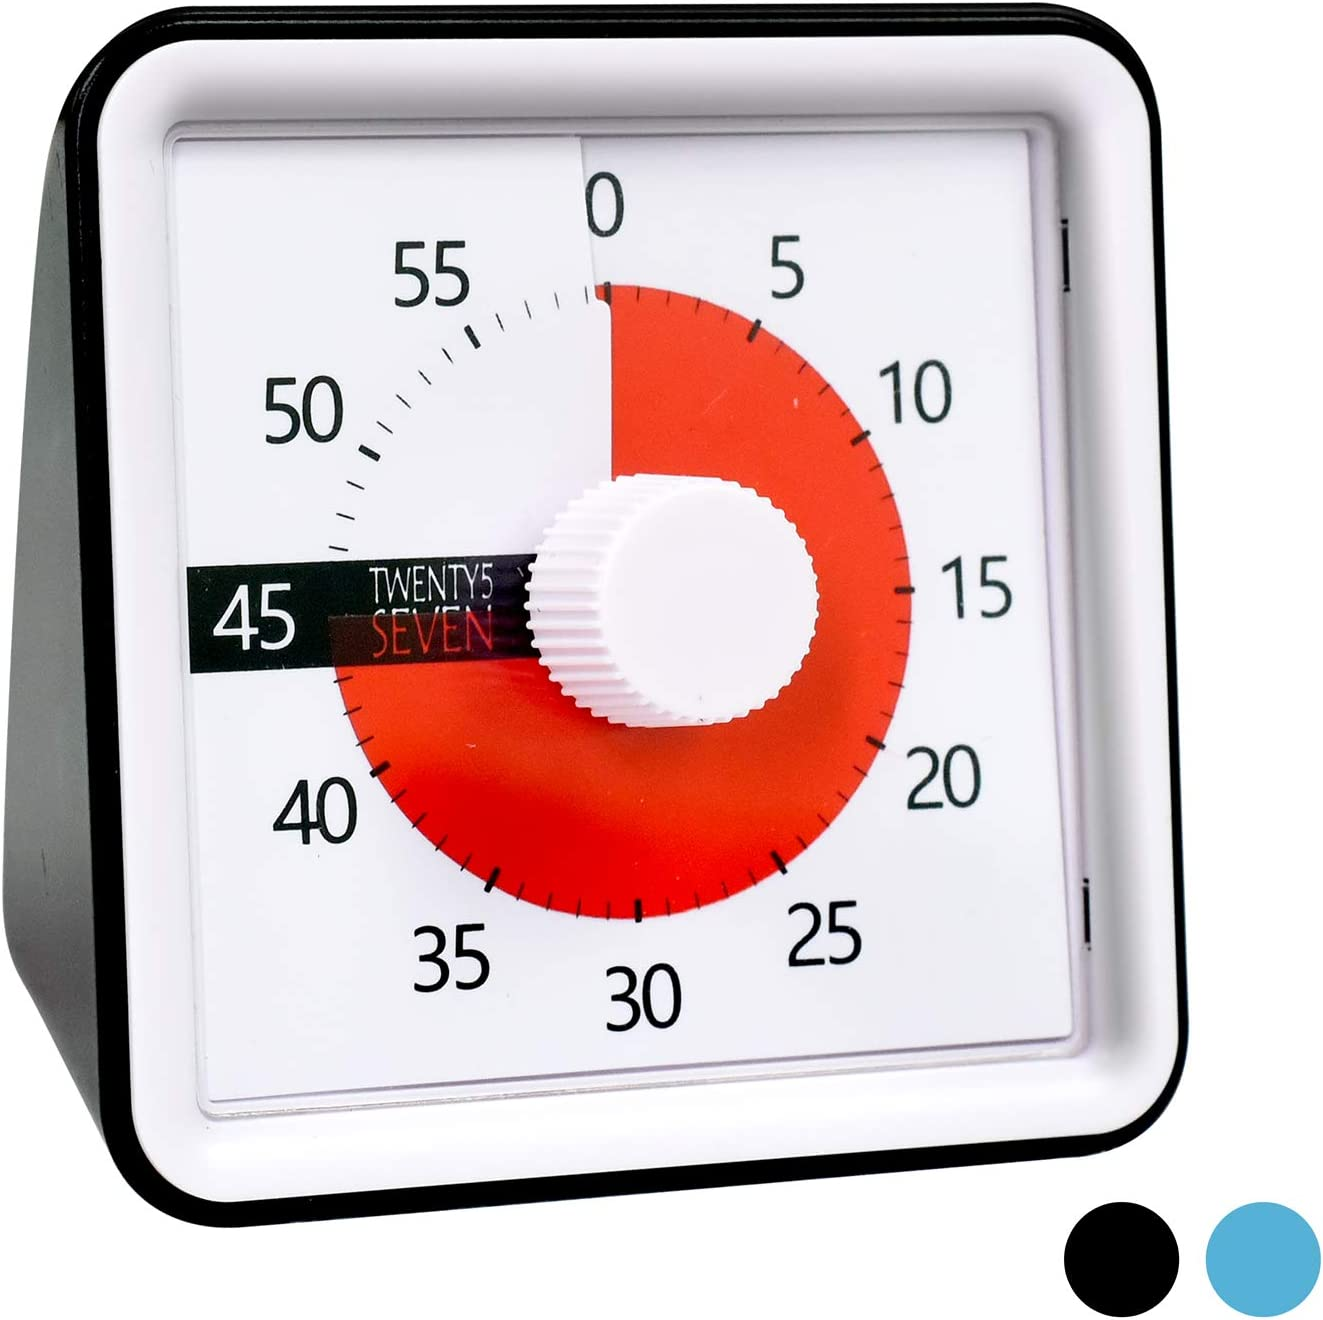 Countdown Timer 3 inch; 60 Minute 1 hour Visual Timer – Classroom Teaching Tool Office Meeting, Countdown Clock for Kids Exam Time Management -Black